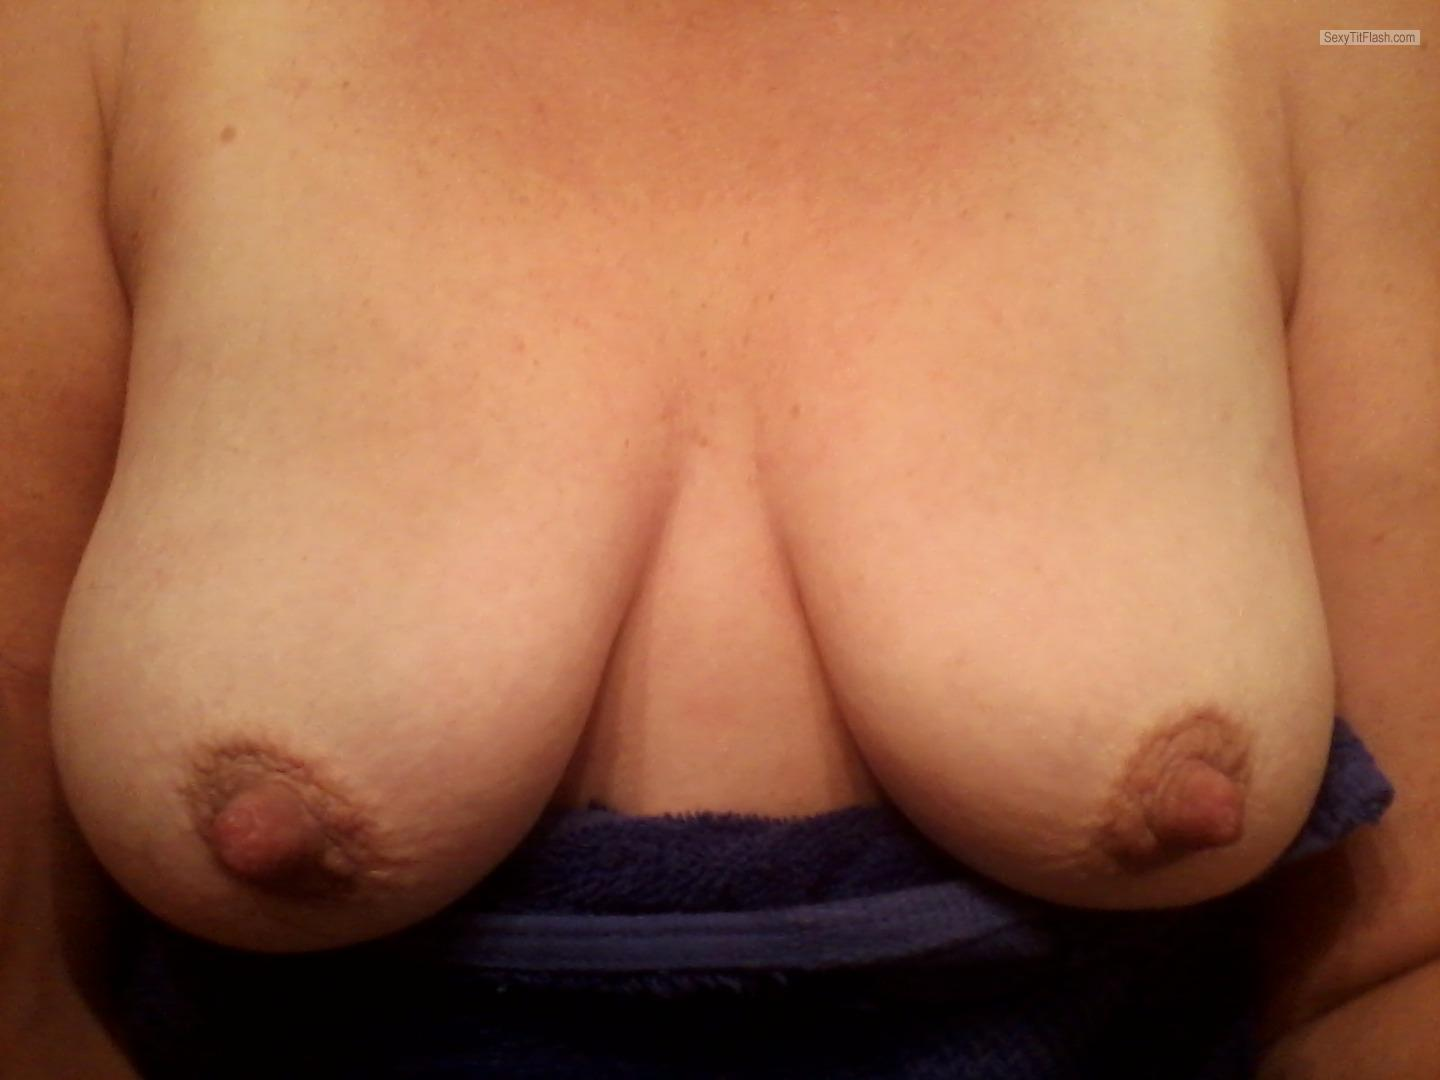 Tit Flash: My Tanlined Medium Tits (Selfie) - Topless Tires from United Kingdom